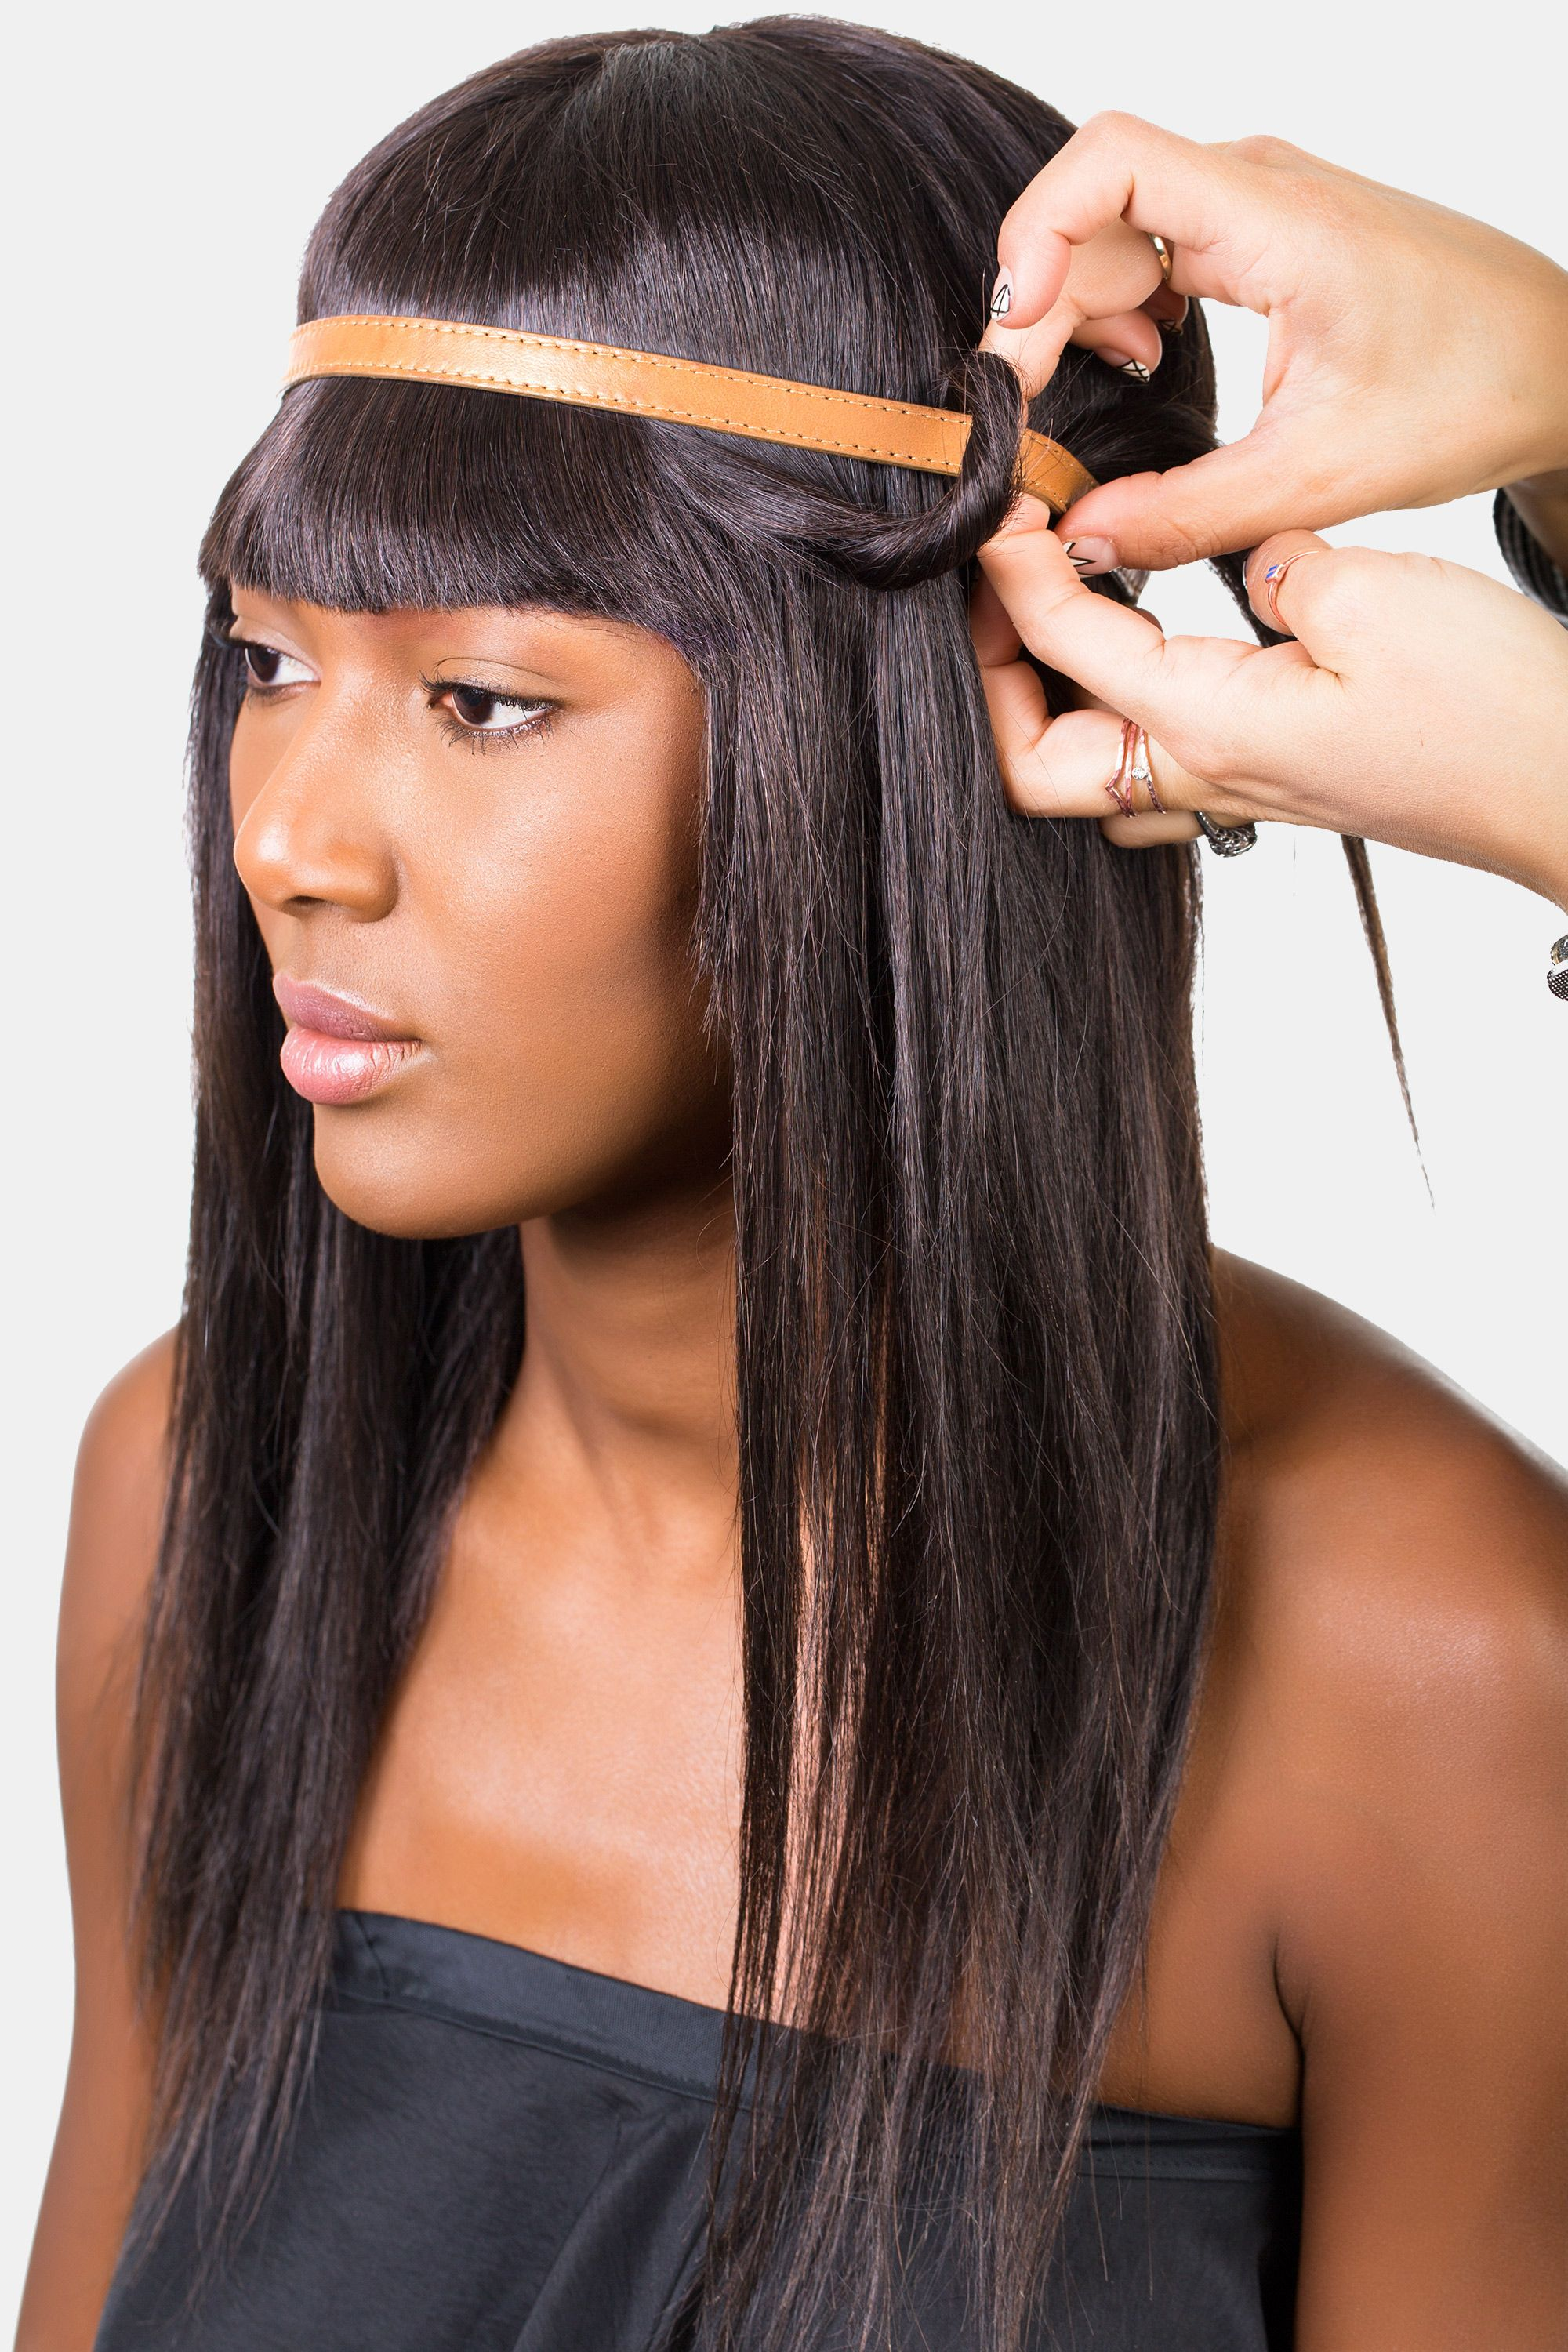 How to style bangs 5 hairstyles to keep your bangs out of your face urmus Gallery